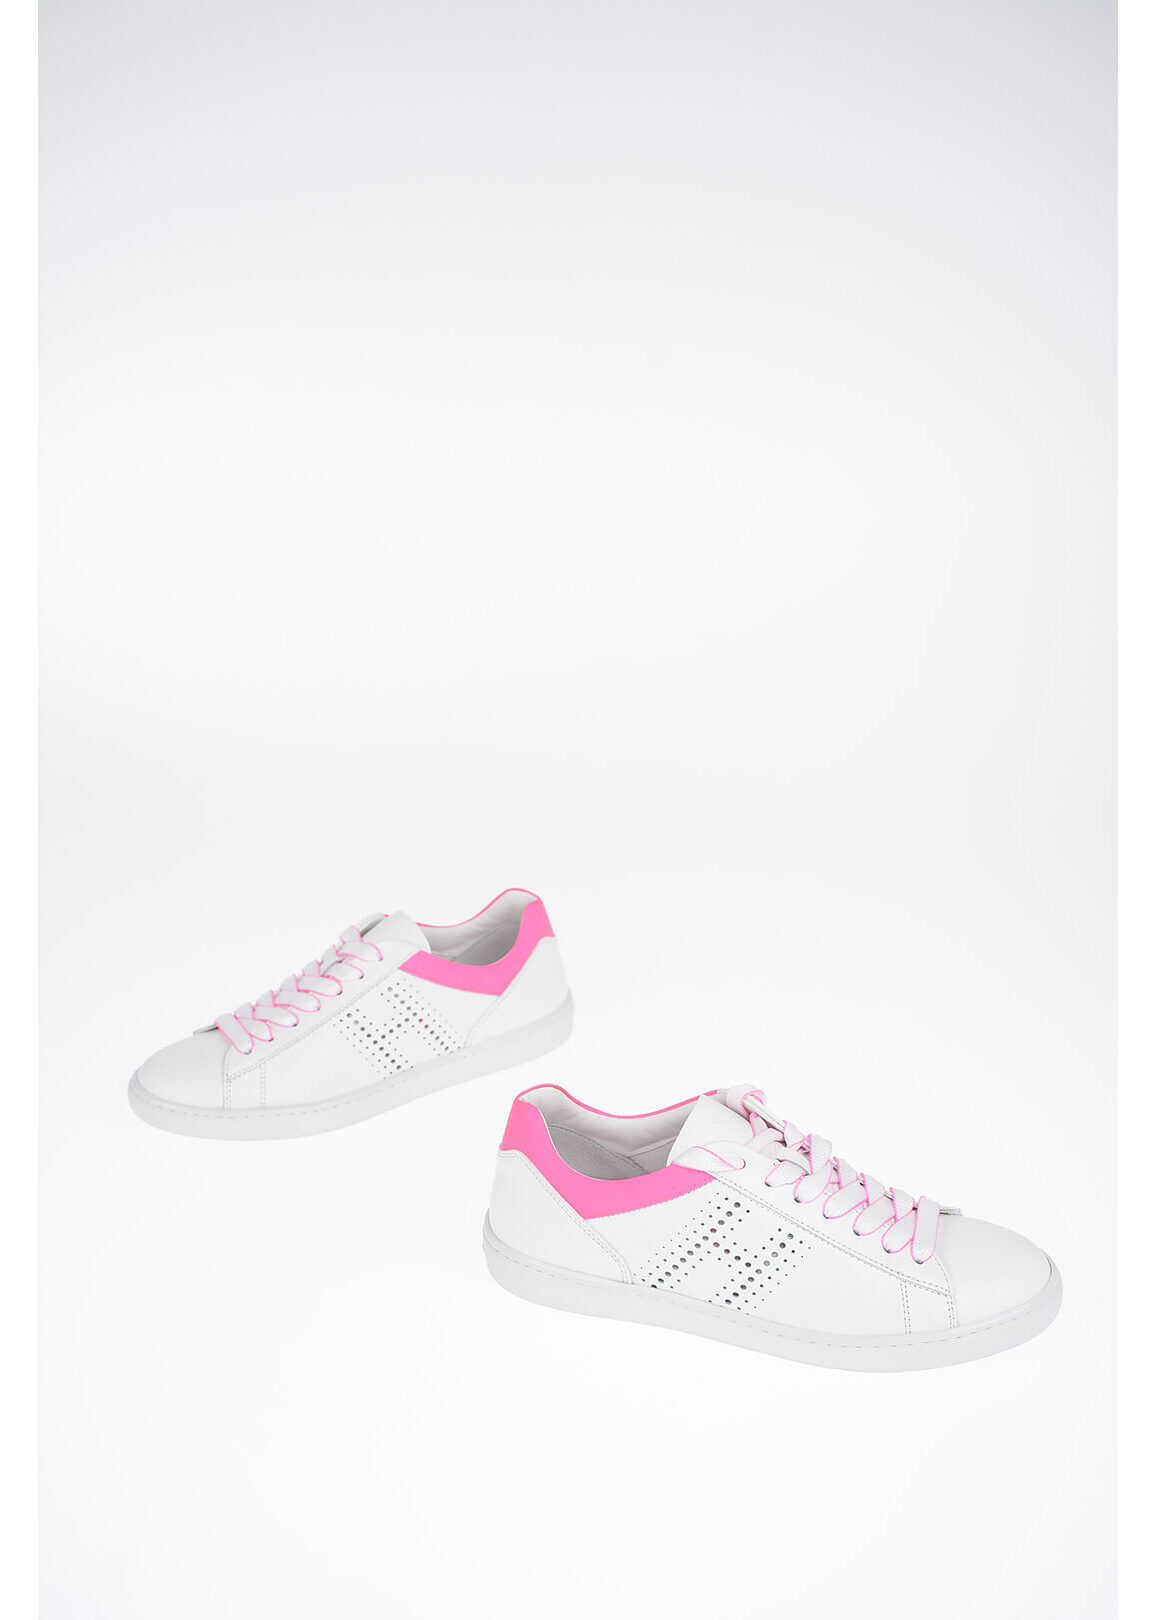 Hogan Leather H86N Sneakers WHITE